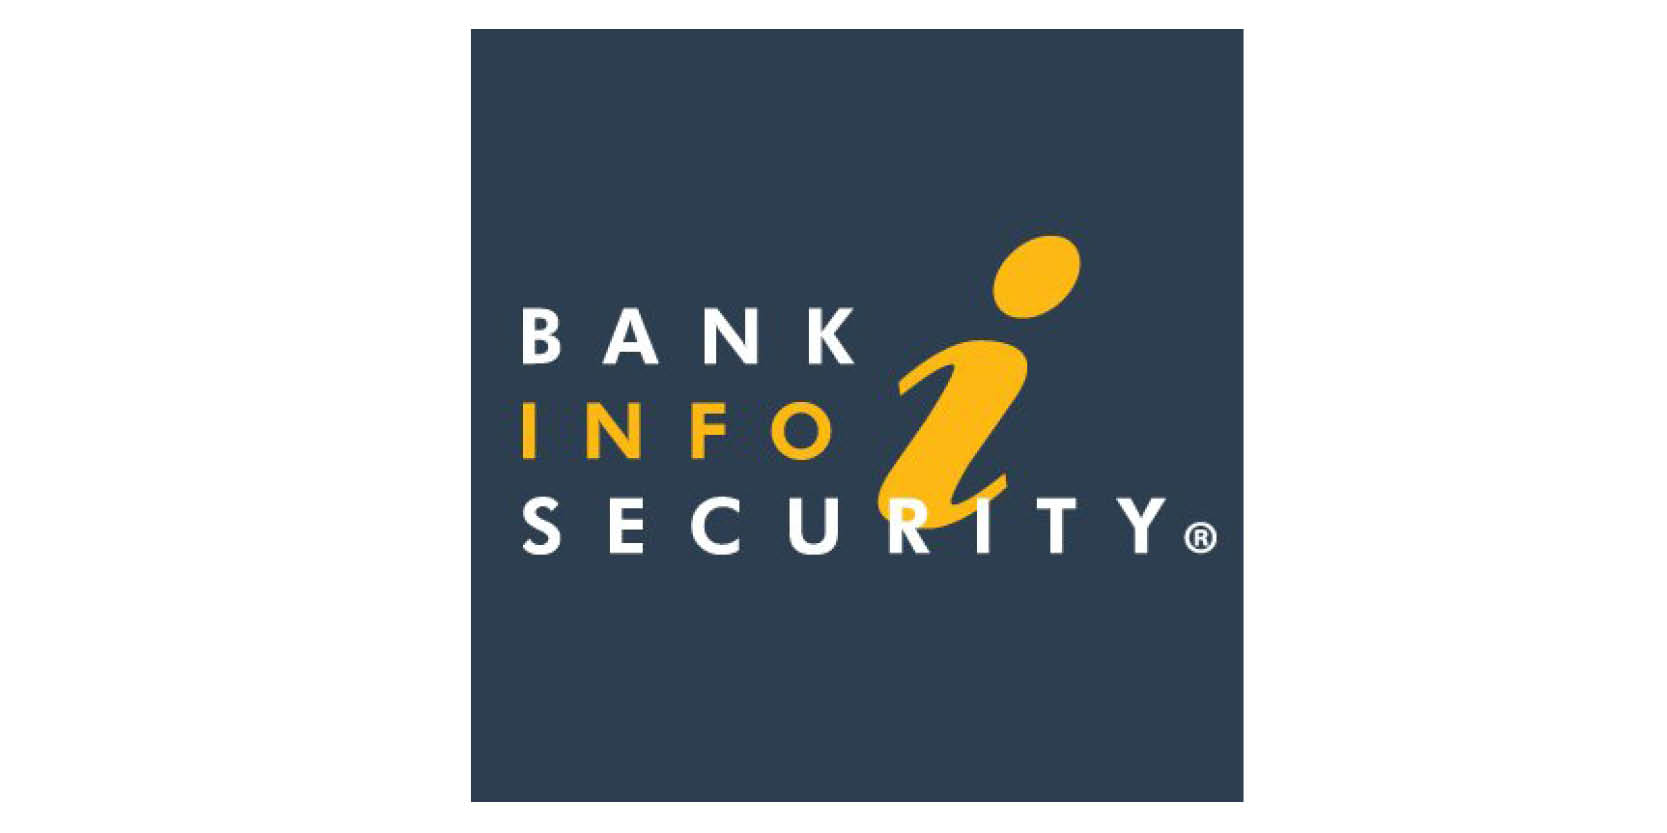 Bank-Info-Security-3